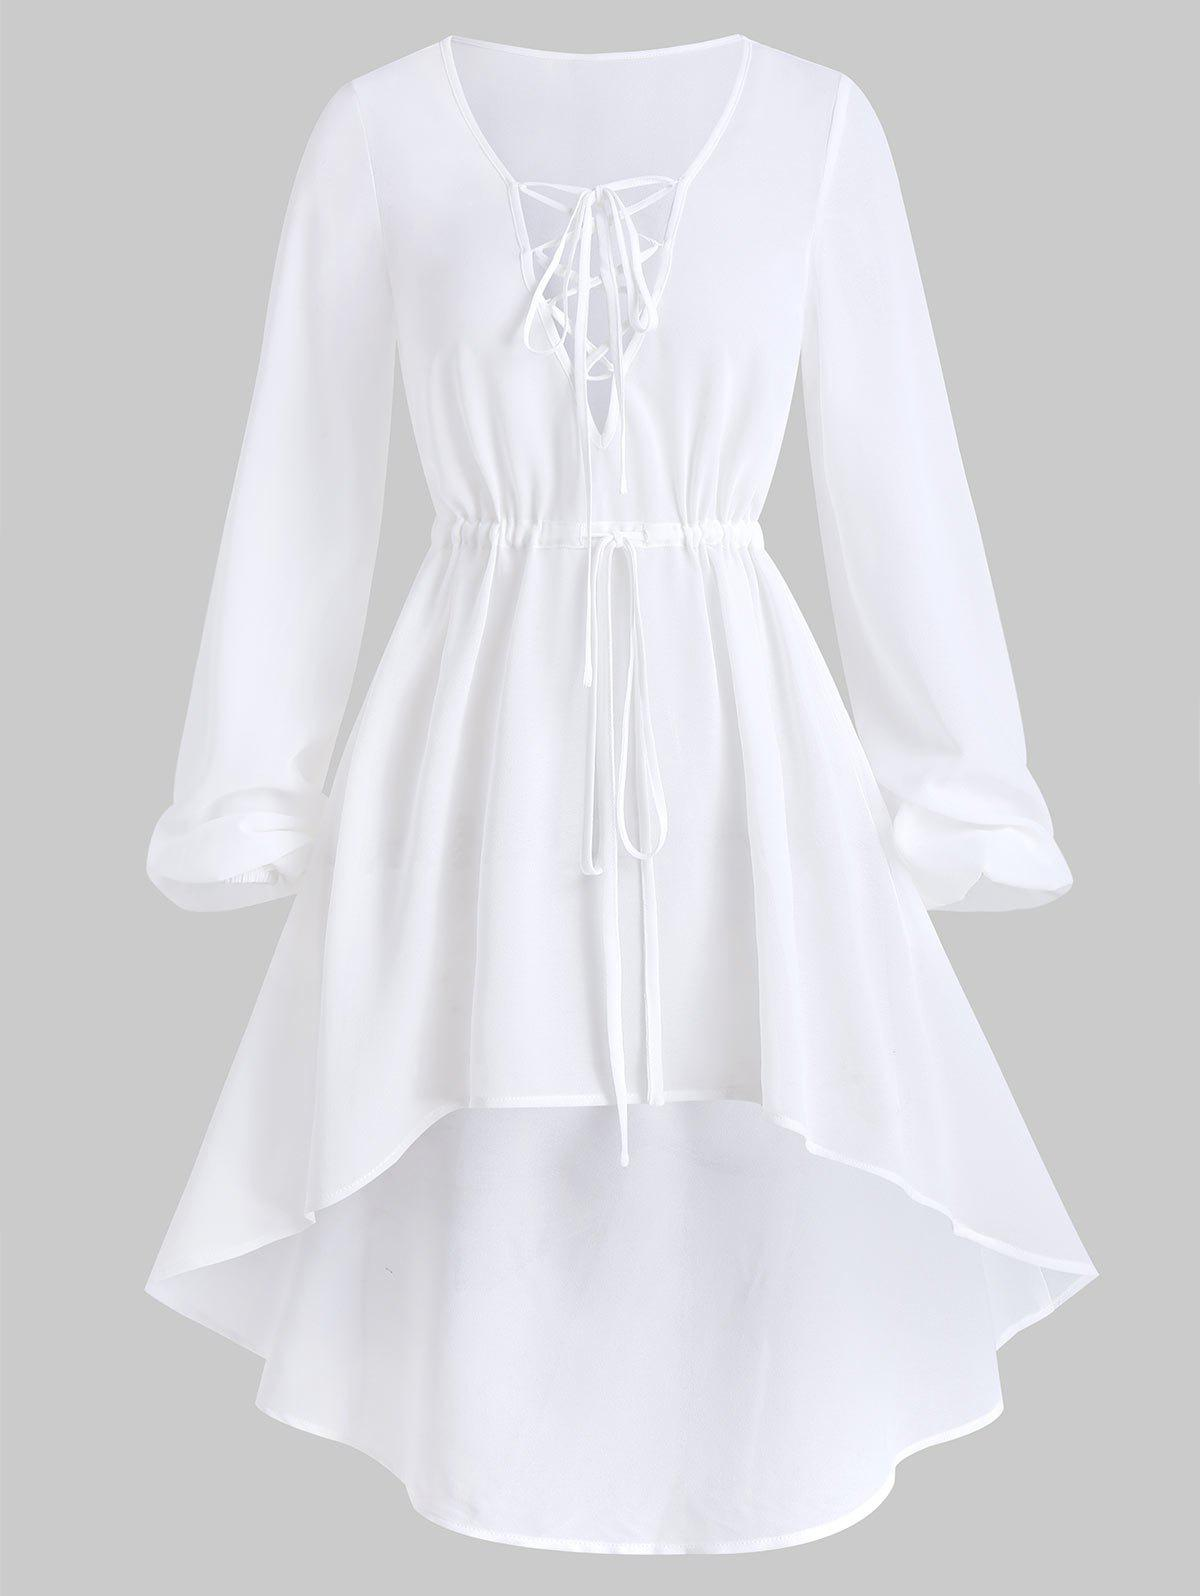 Shops Lace-up Bishop Sleeve High Low Chiffon Cover-up